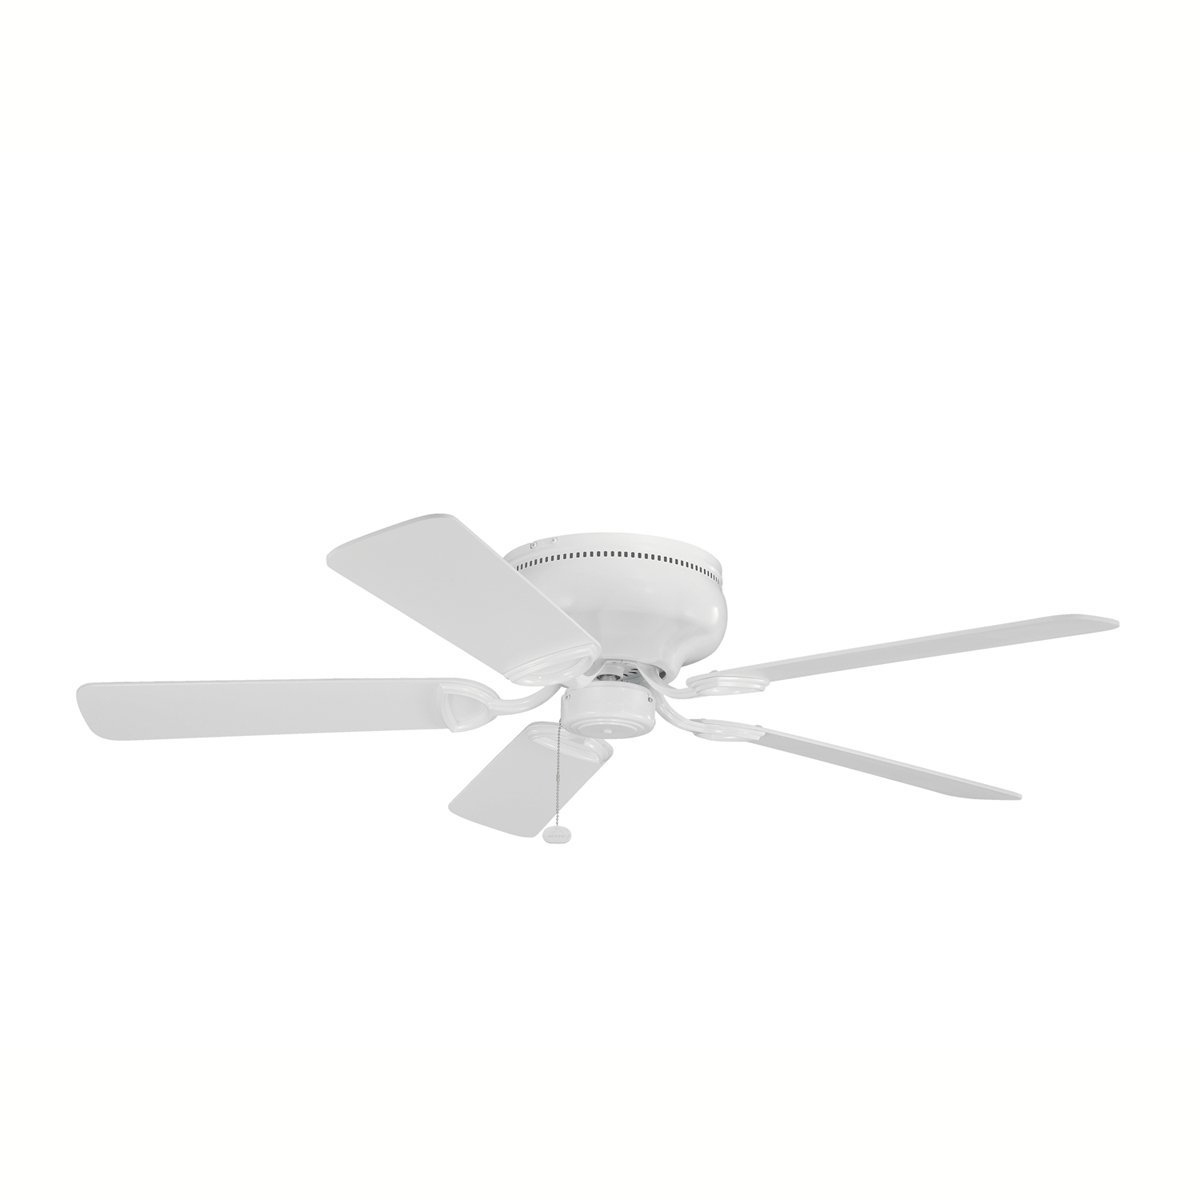 2019 Outdoor Ceiling Fans Flush Mount With Light Intended For Flush Mount Ceiling Fans Without Lights Big Outdoor Ceiling Fan With (View 14 of 20)